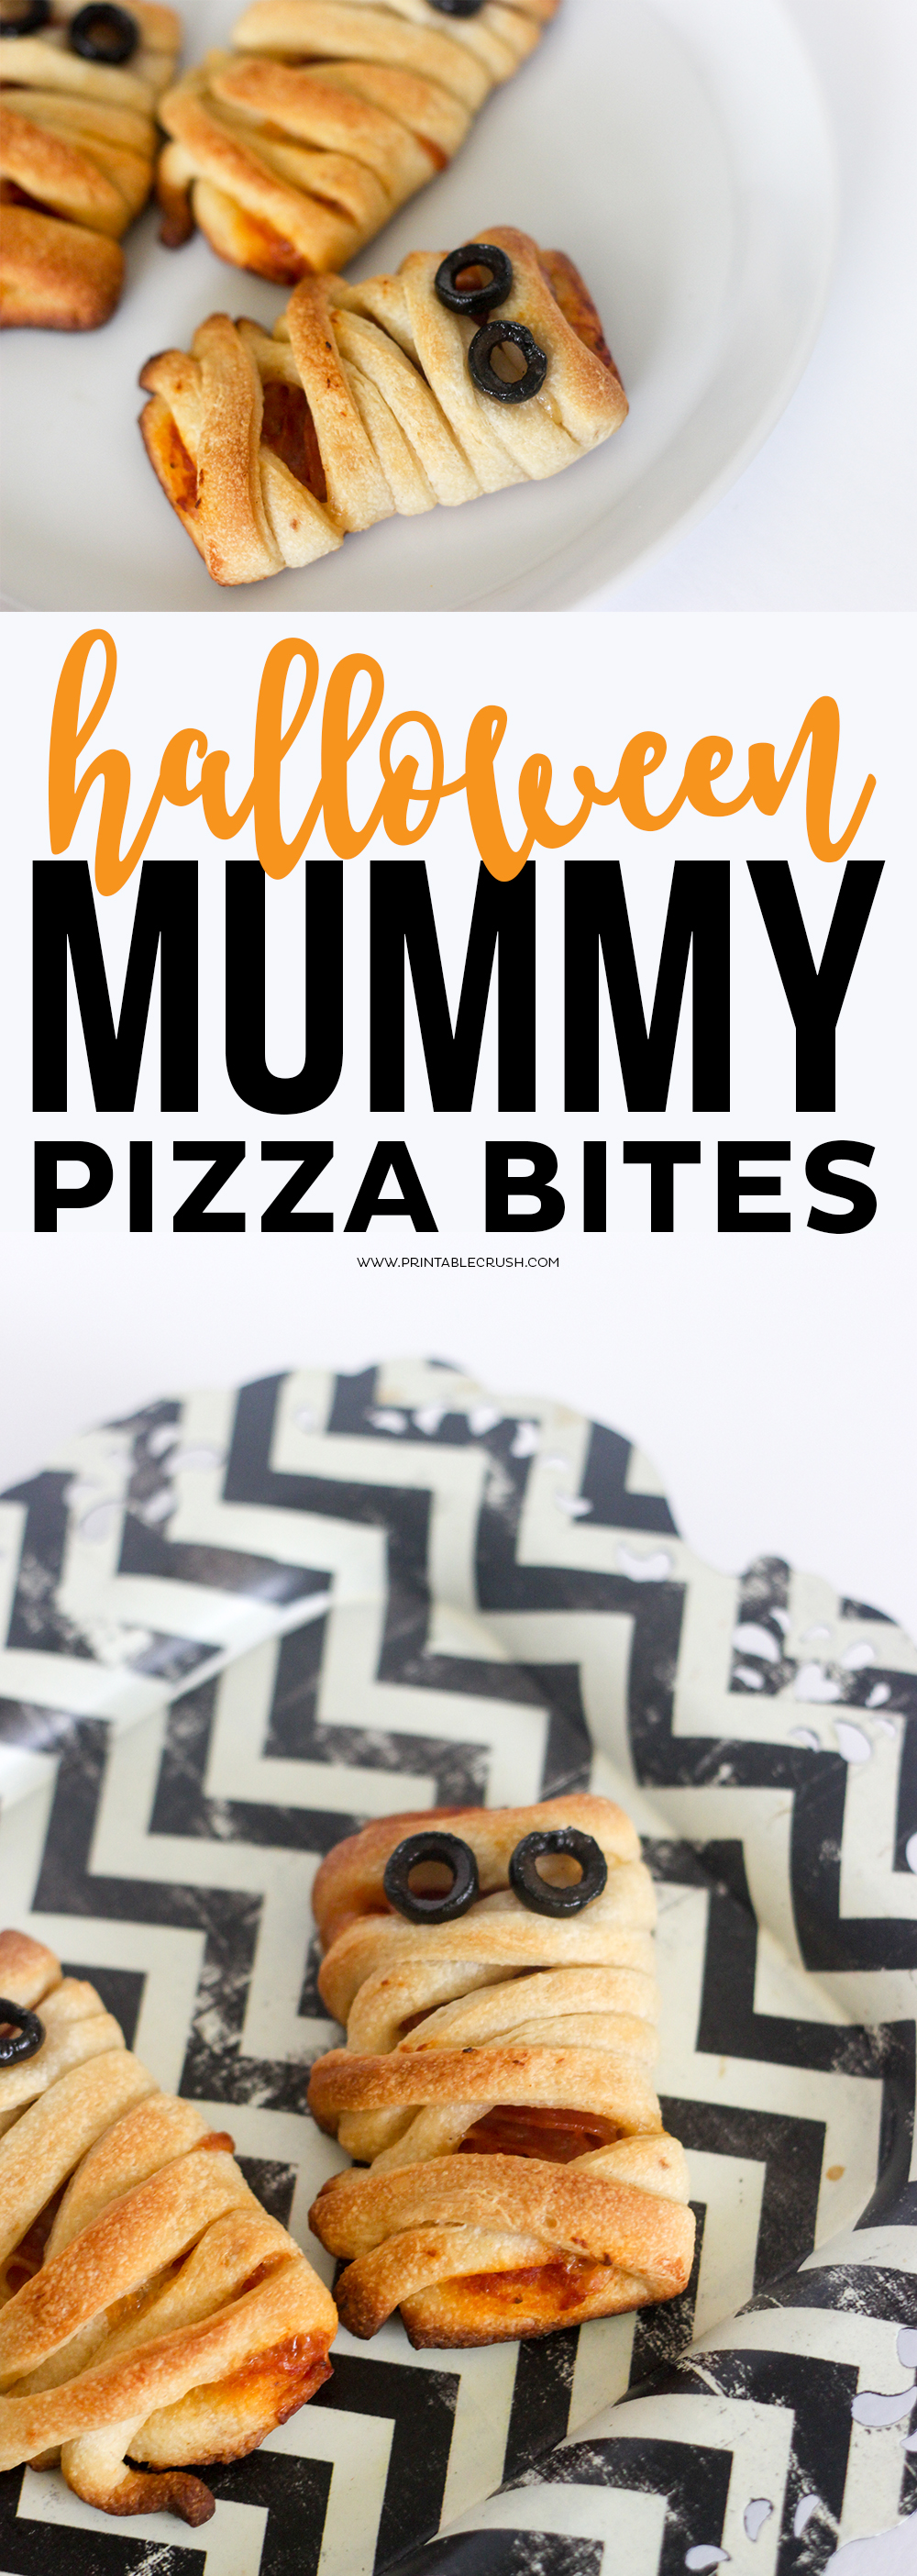 Mummy Pizza Bites collage